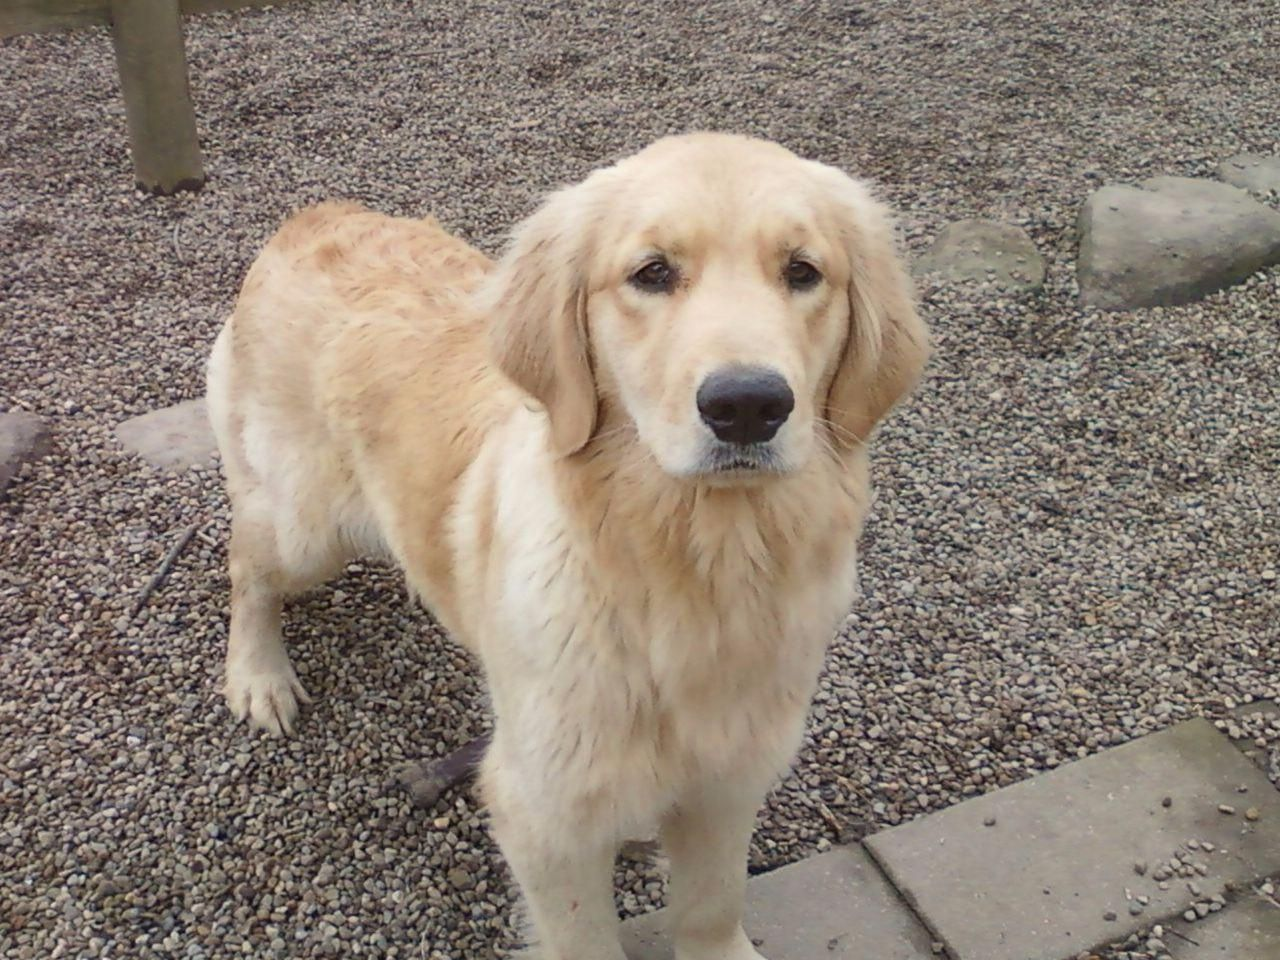 As a hobby breeder of this line of Golden Retrievers for